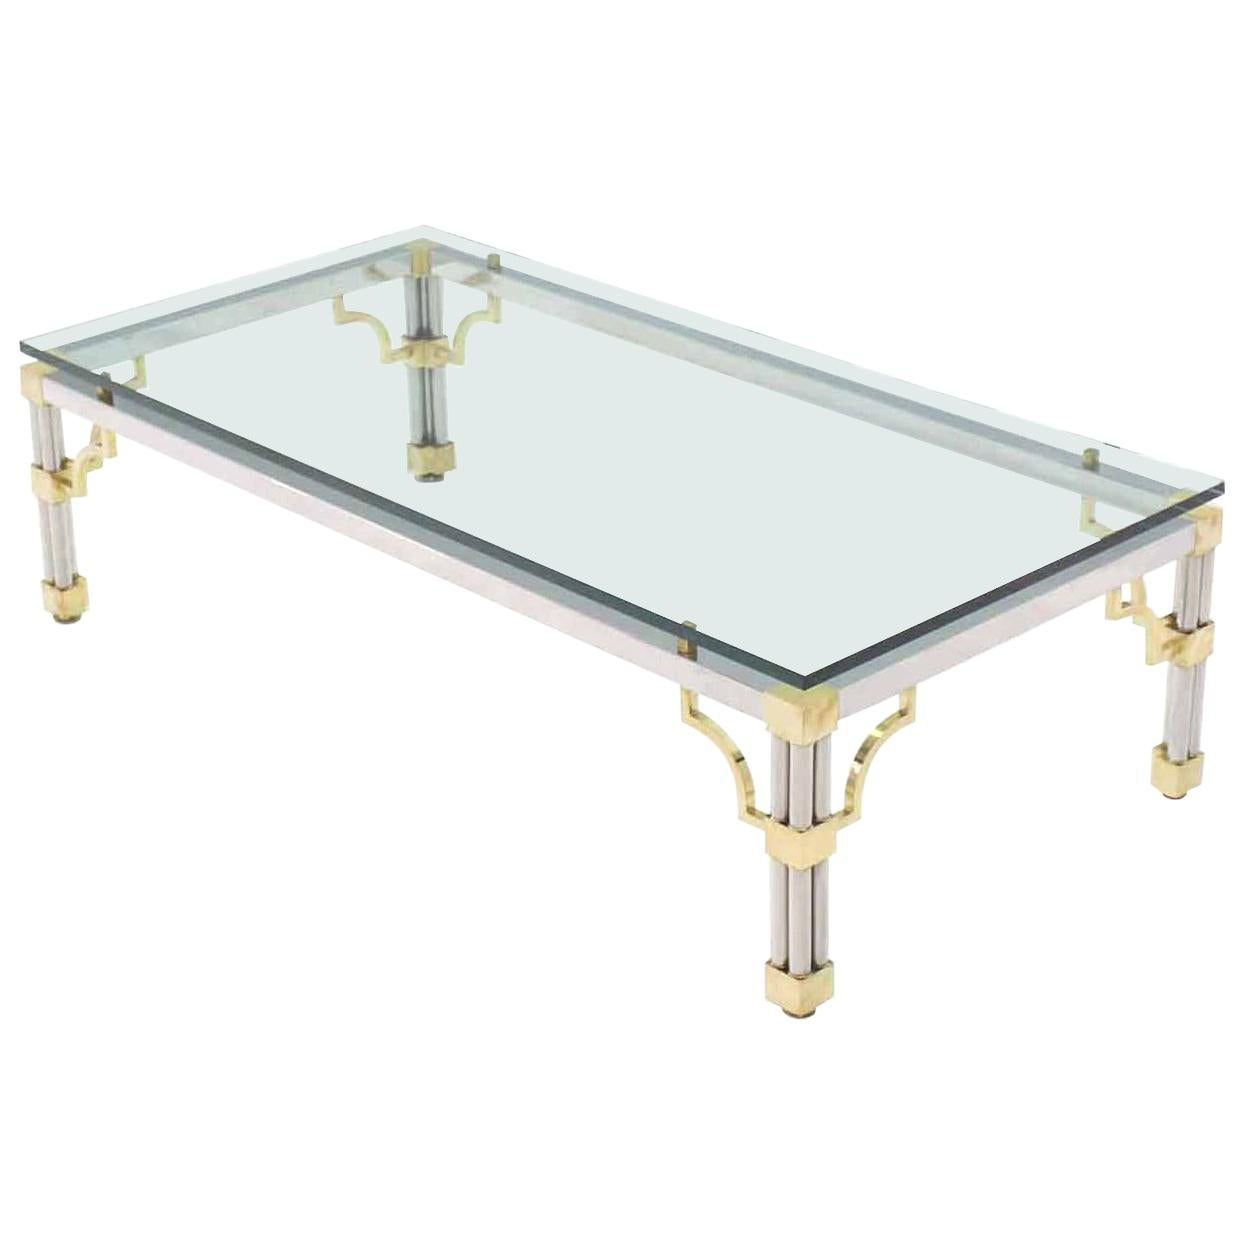 Heavy Thick Glass Brass and Chrome Coffee Table